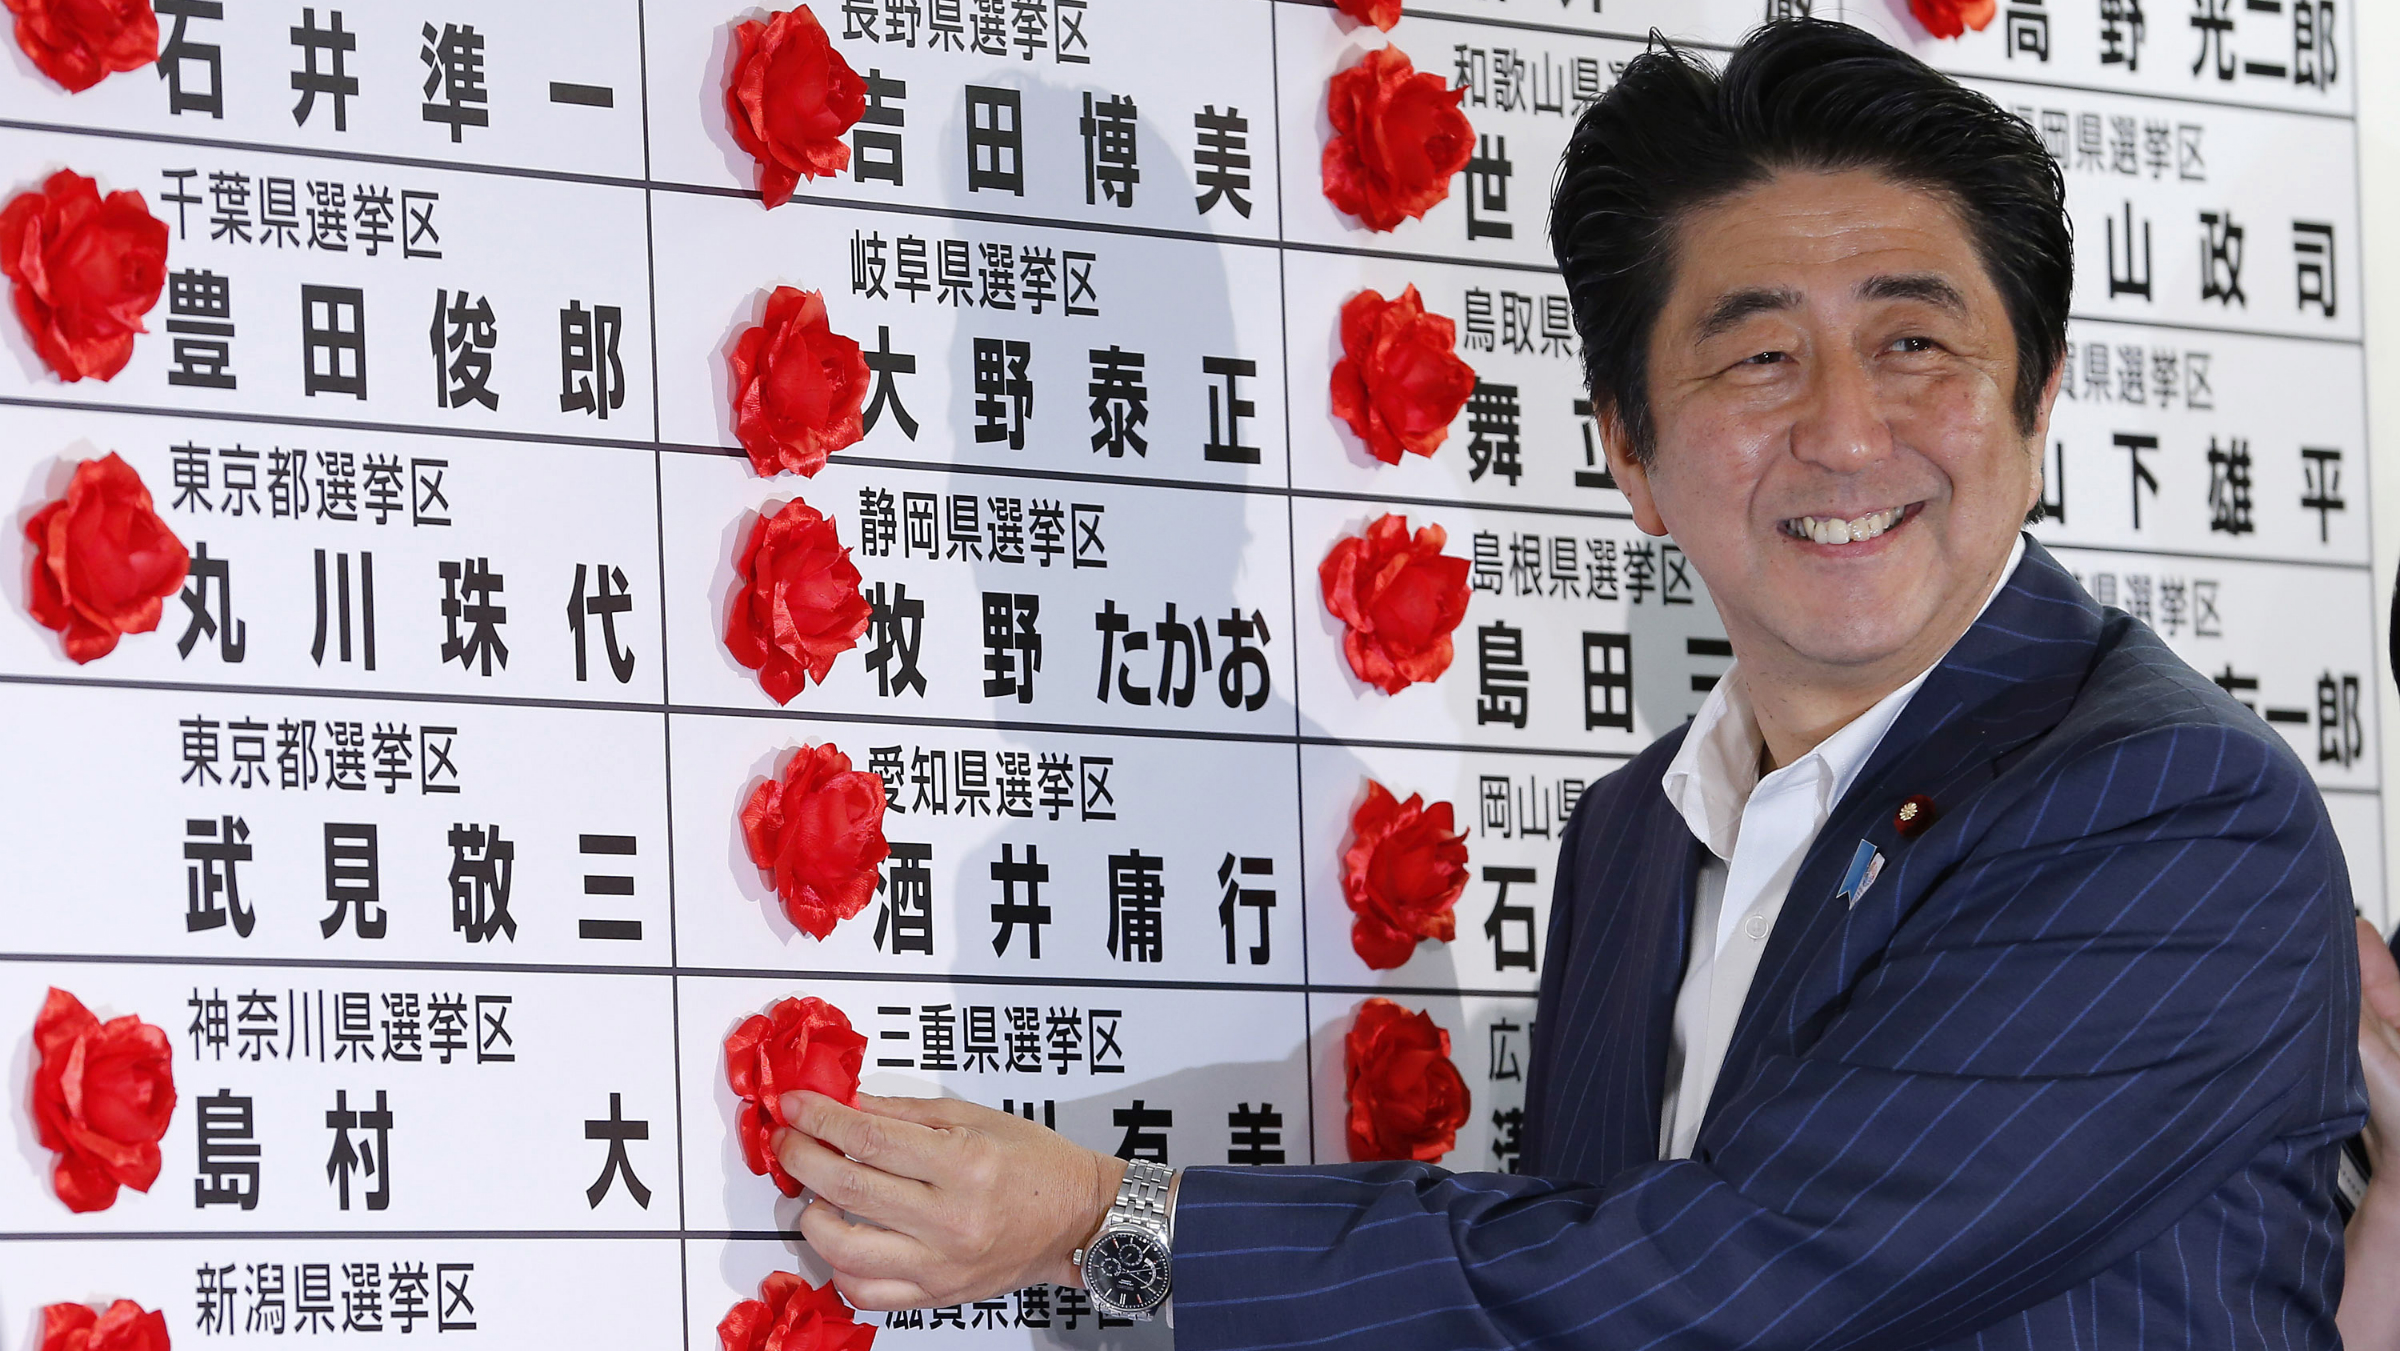 Japanese Prime Minister Shinzo Abe smiles as he places a red rosette on the name of his Liberal Democratic Party's candidate during ballot counting for the upper house elections at the party headquarters in Tokyo Sunday, July 21, 2013. Japanese broadcasters projected that Abe's ruling coalition won a majority of seats in the upper house of parliament in elections, giving it control of both chambers for the first time in six years. (AP Photo/Shizuo Kambayashi